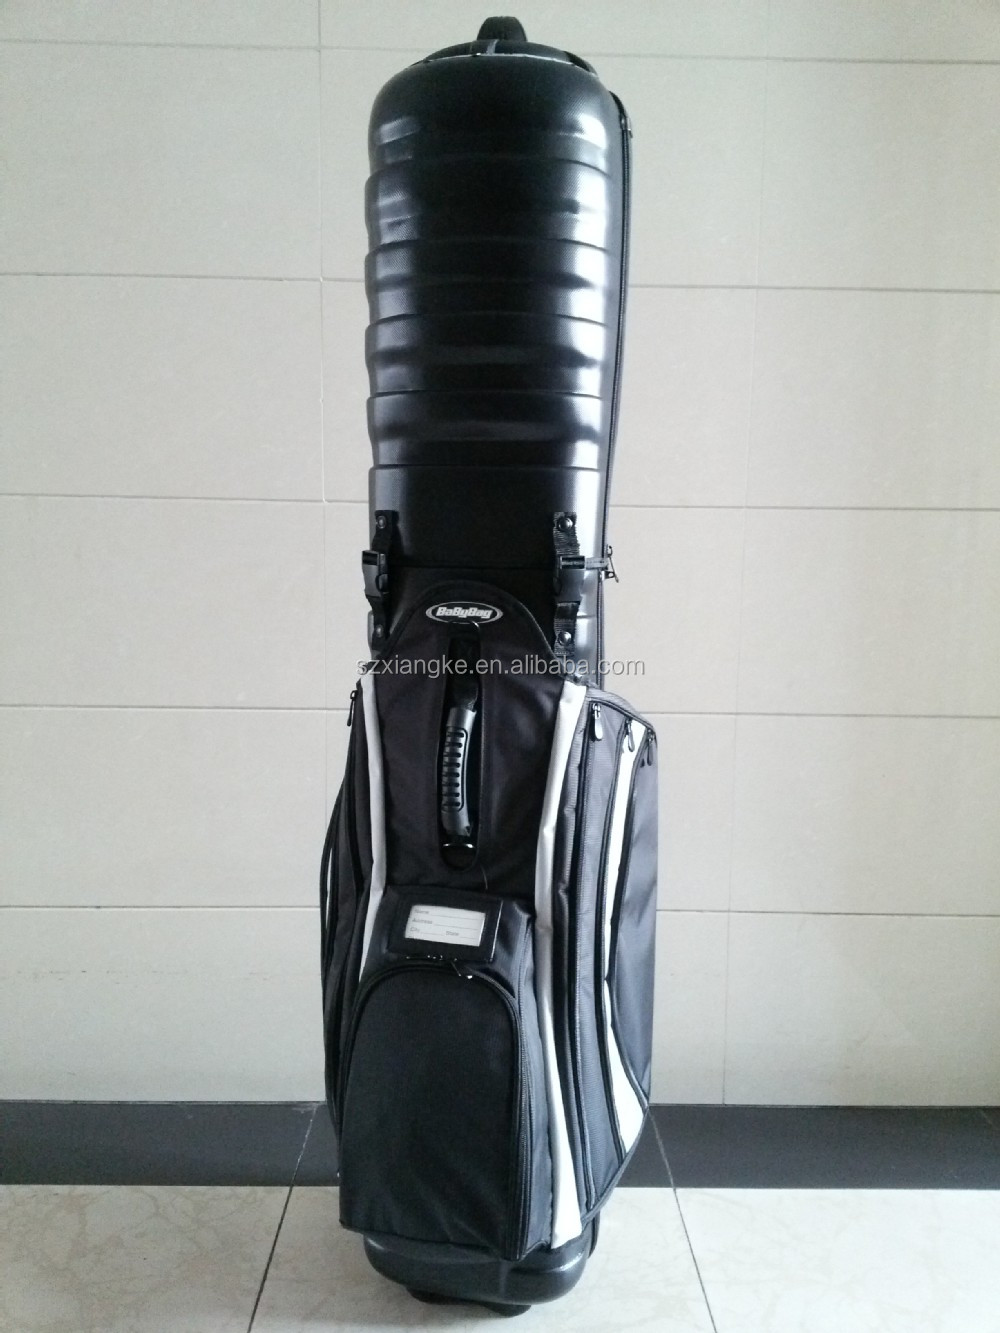 Hard Case Golf Club Travel Cover Buy Hard Case Golf Club Travel Cover Golf Bag Travel Cover Gofl Bag Product On Alibaba Com